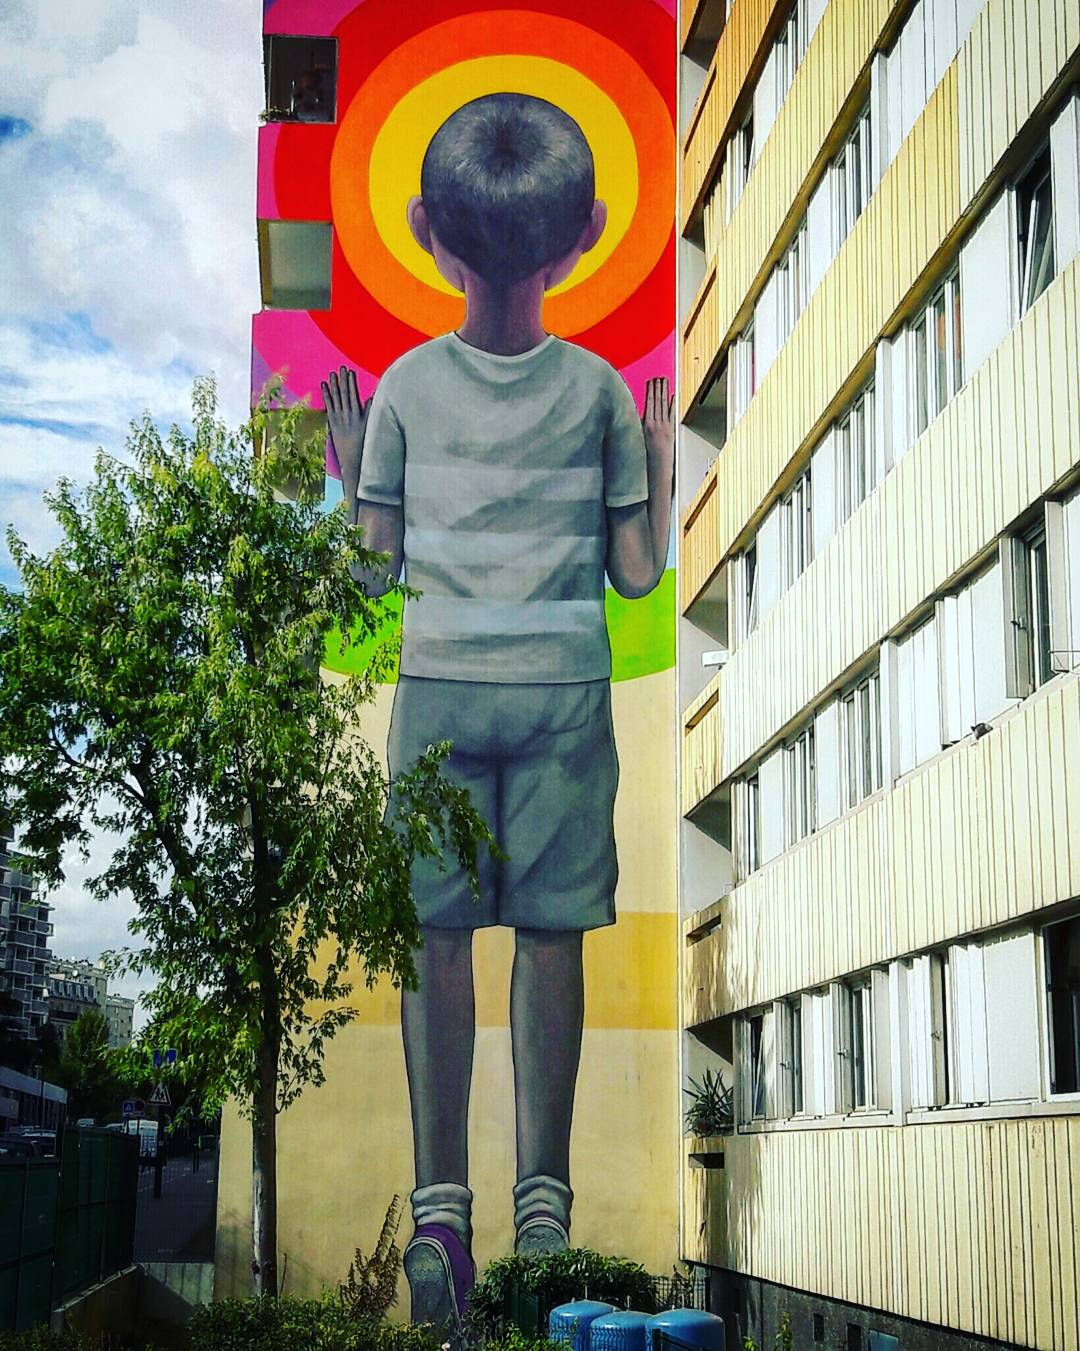 art by seth sethglobepainter freque mural paris 13 street art